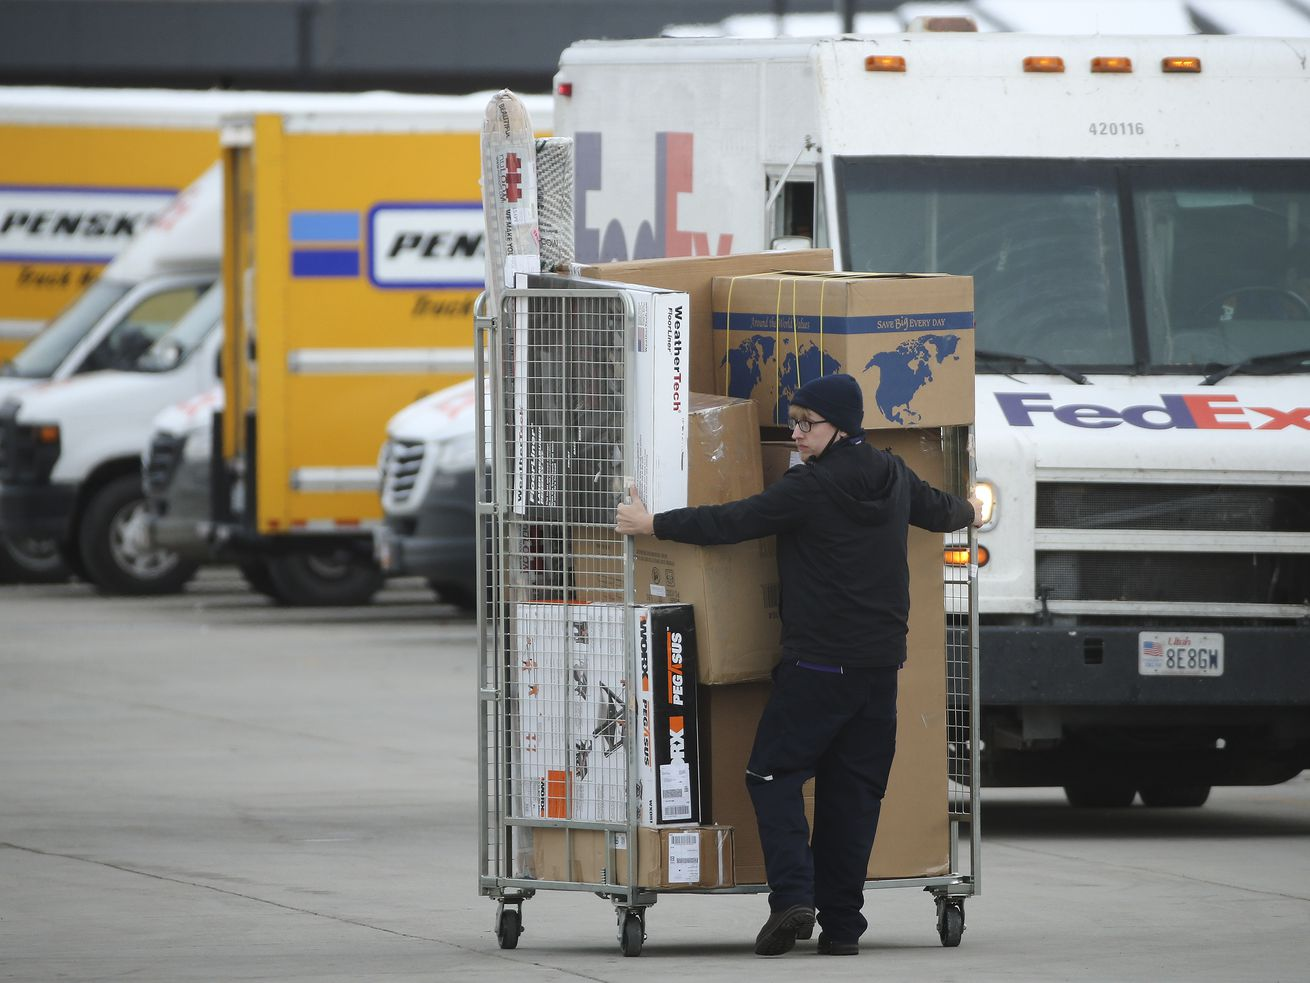 FedEx trucks are loaded for deliveries in Salt Lake City on Tuesday, Nov. 10, 2020. Ongoing and widespread COVID-19 restrictions are fueling an unprecedented volume of online shopping for the holiday season.